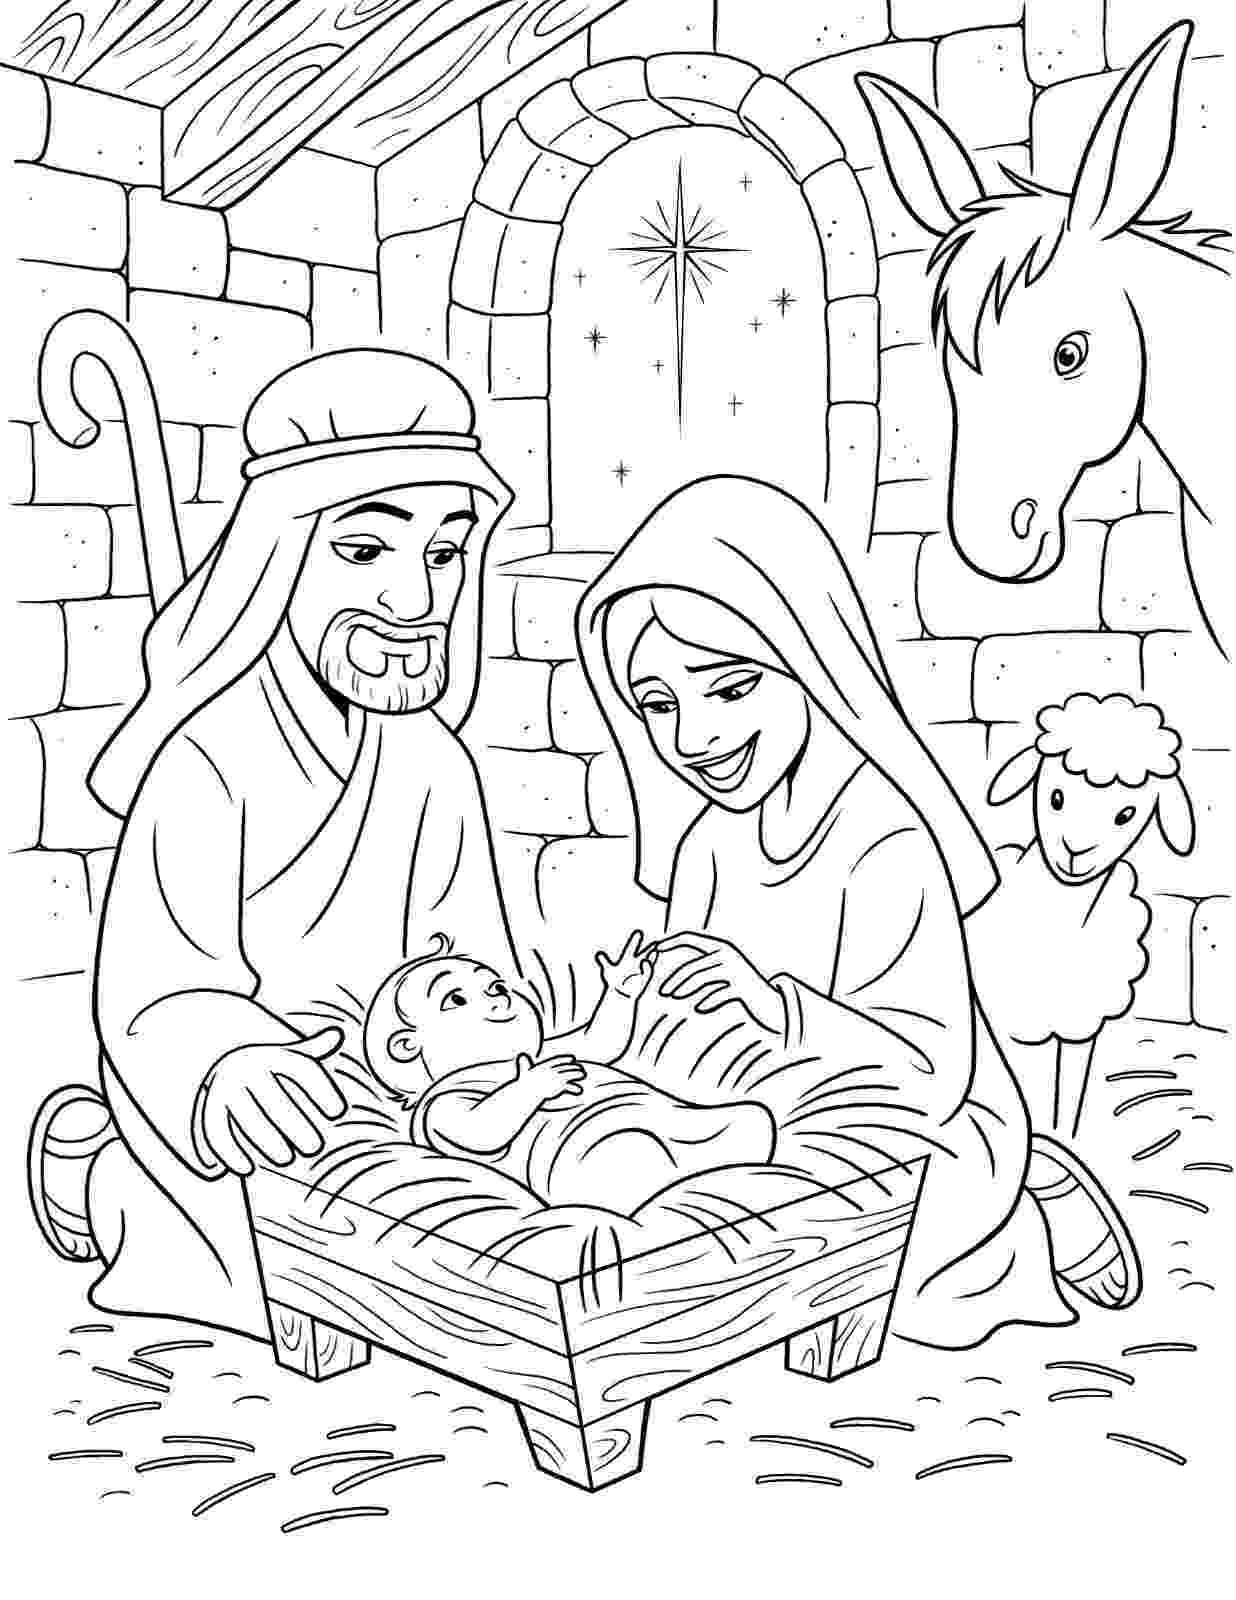 coloring page nativity scene history of the creche amy39s wandering page coloring scene nativity